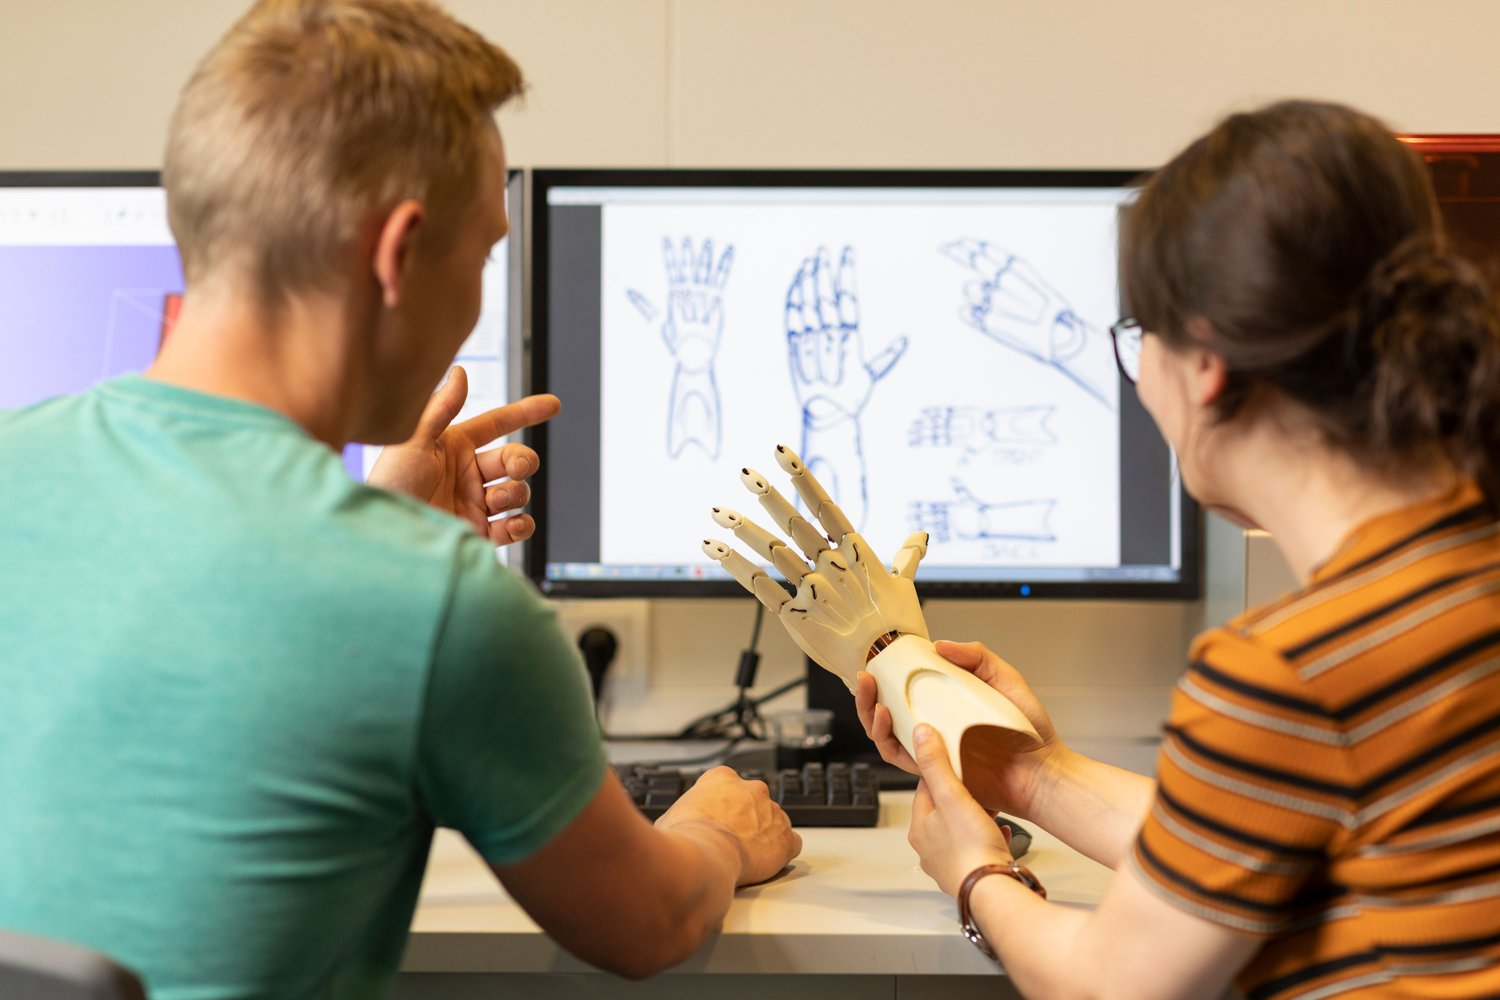 Bachelor S Programme Industrial Design Engineering University Of Twente